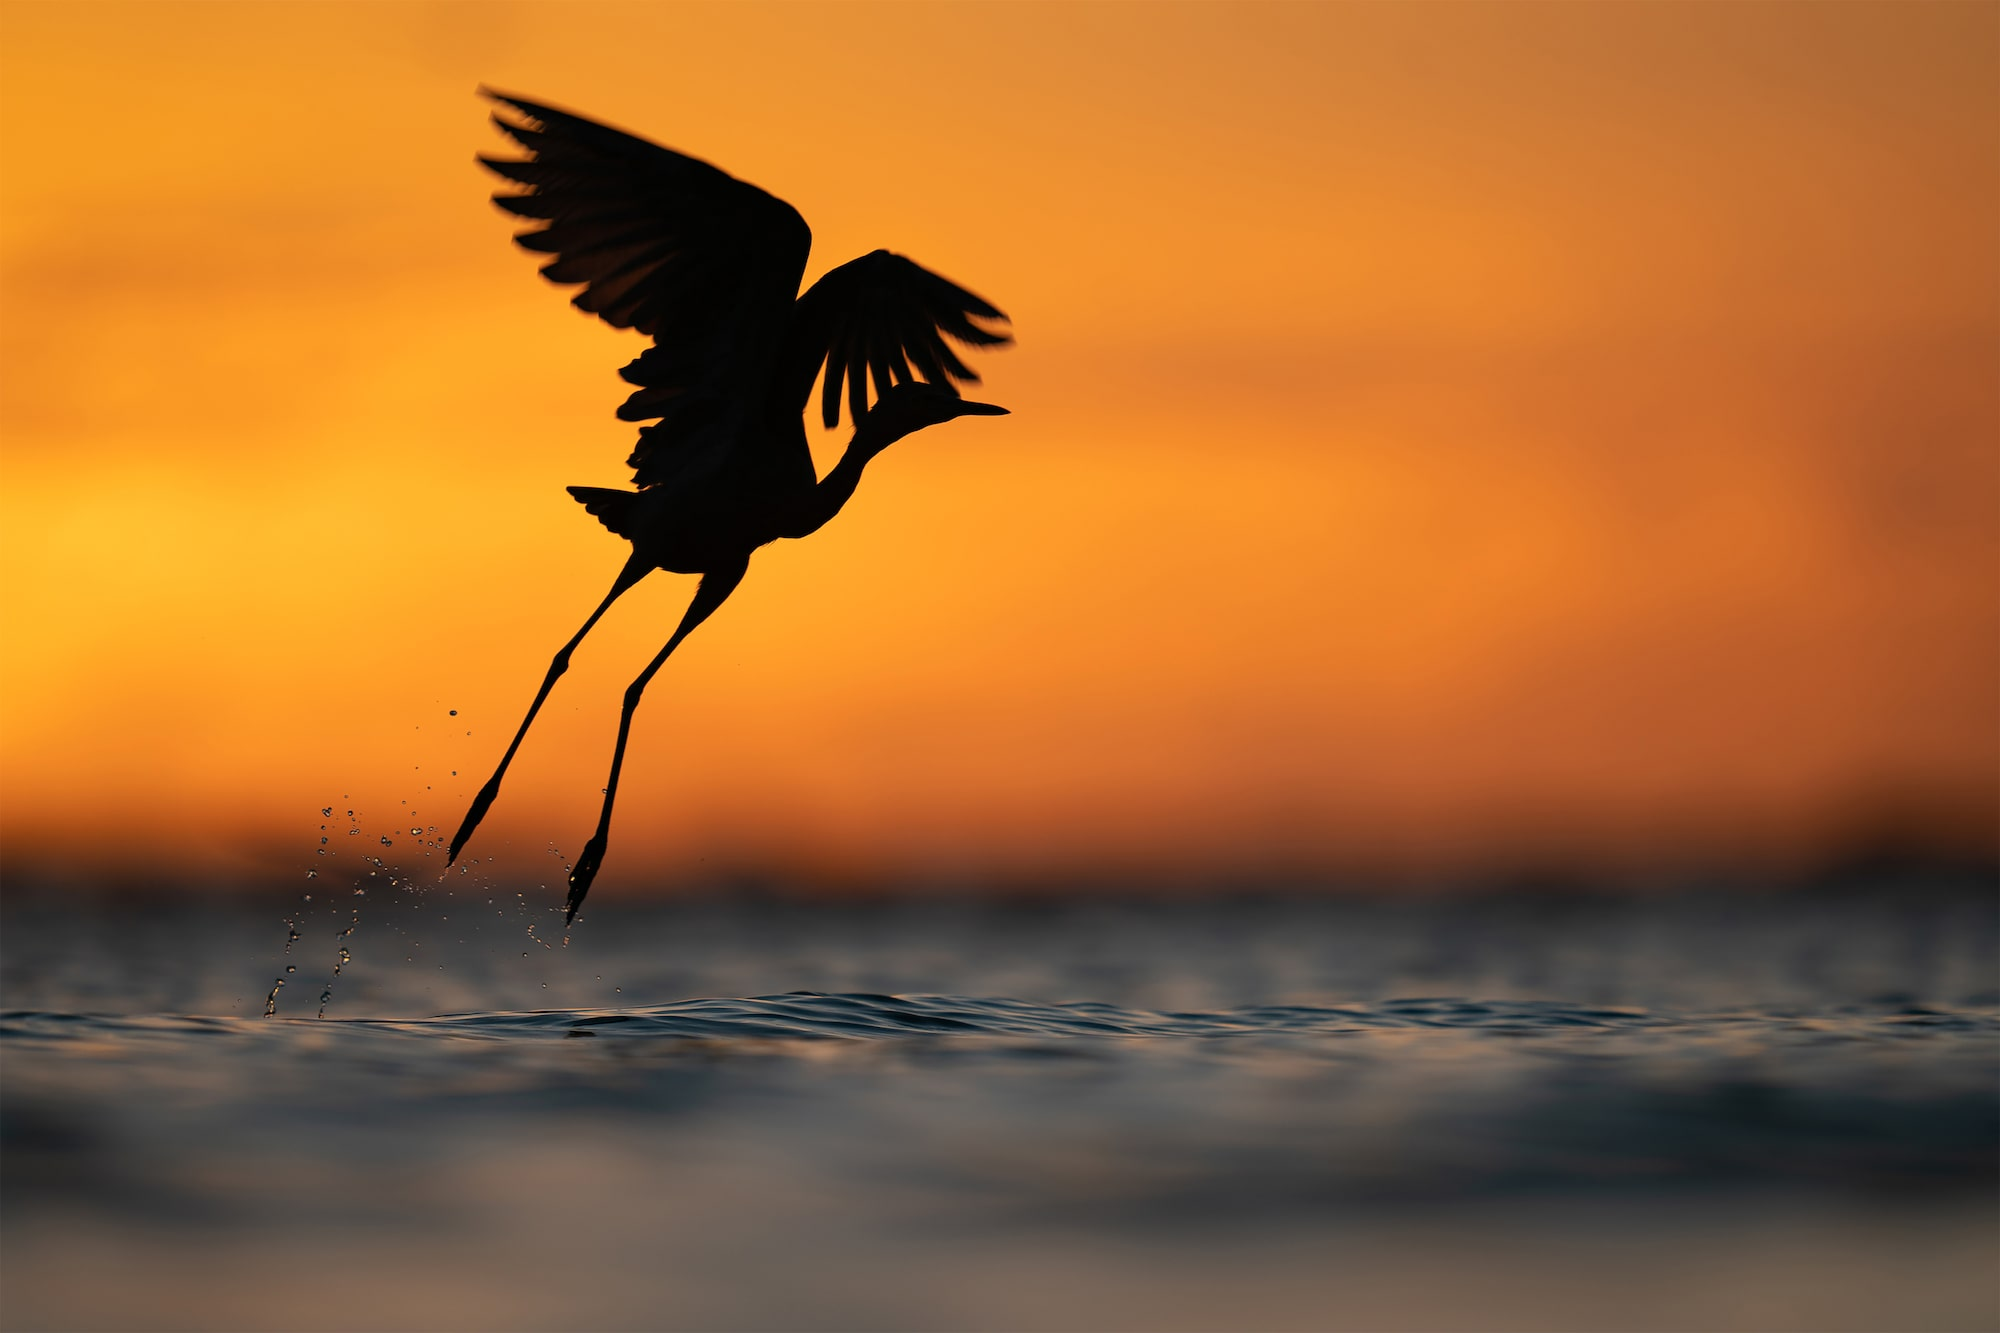 andreas-hemb-sony-alpha-9-a-heron-takes-off-from-the-water-with-a-strong-sunset-behind